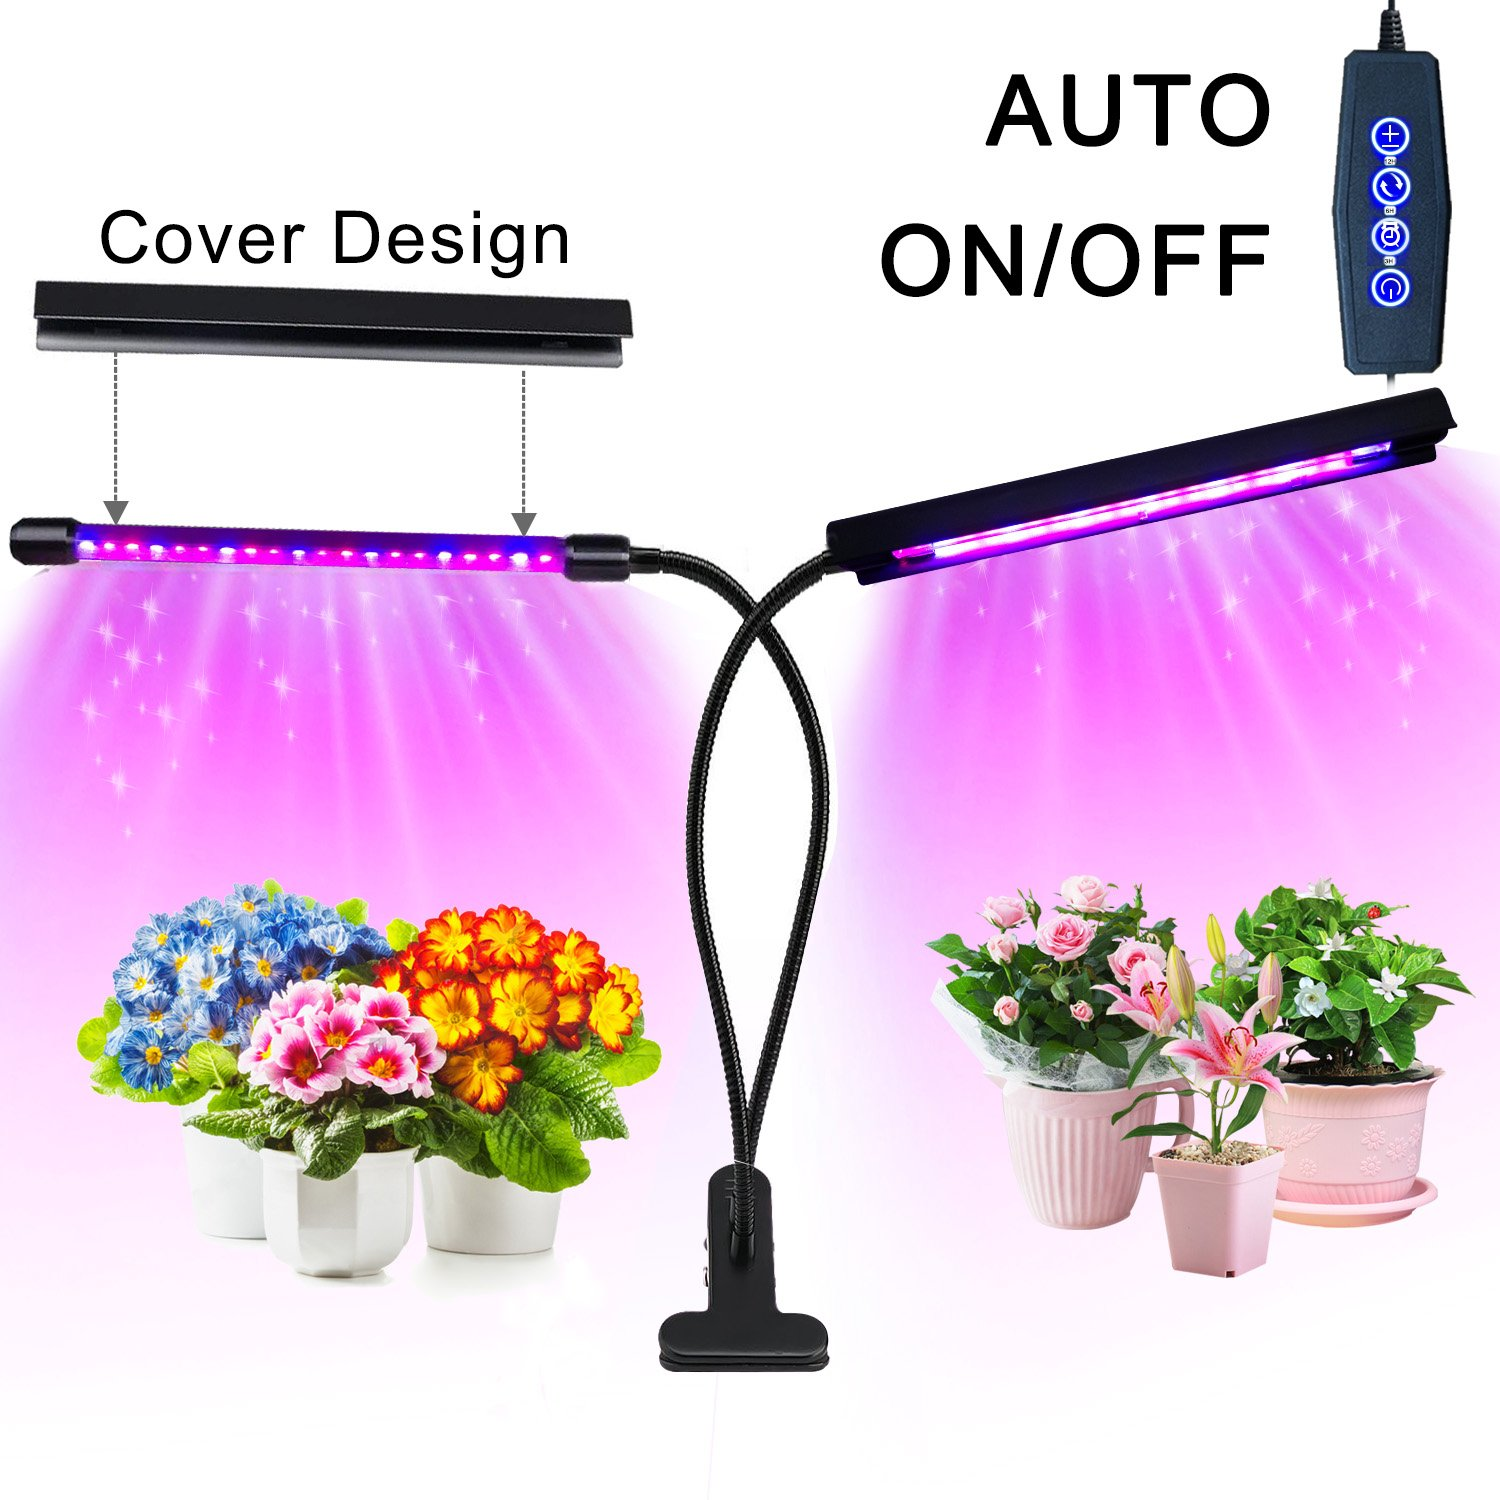 Grow Light, 20W 40 LED Auto ON/OFF Plant Grow Lamp Dual Head Timing Grow Light for Indoor Plants Seed Starting with Red/Blue Spectrum Adjustable Gooseneck 3/6/12H Timer 5 Dimmable Levels by Eleclist